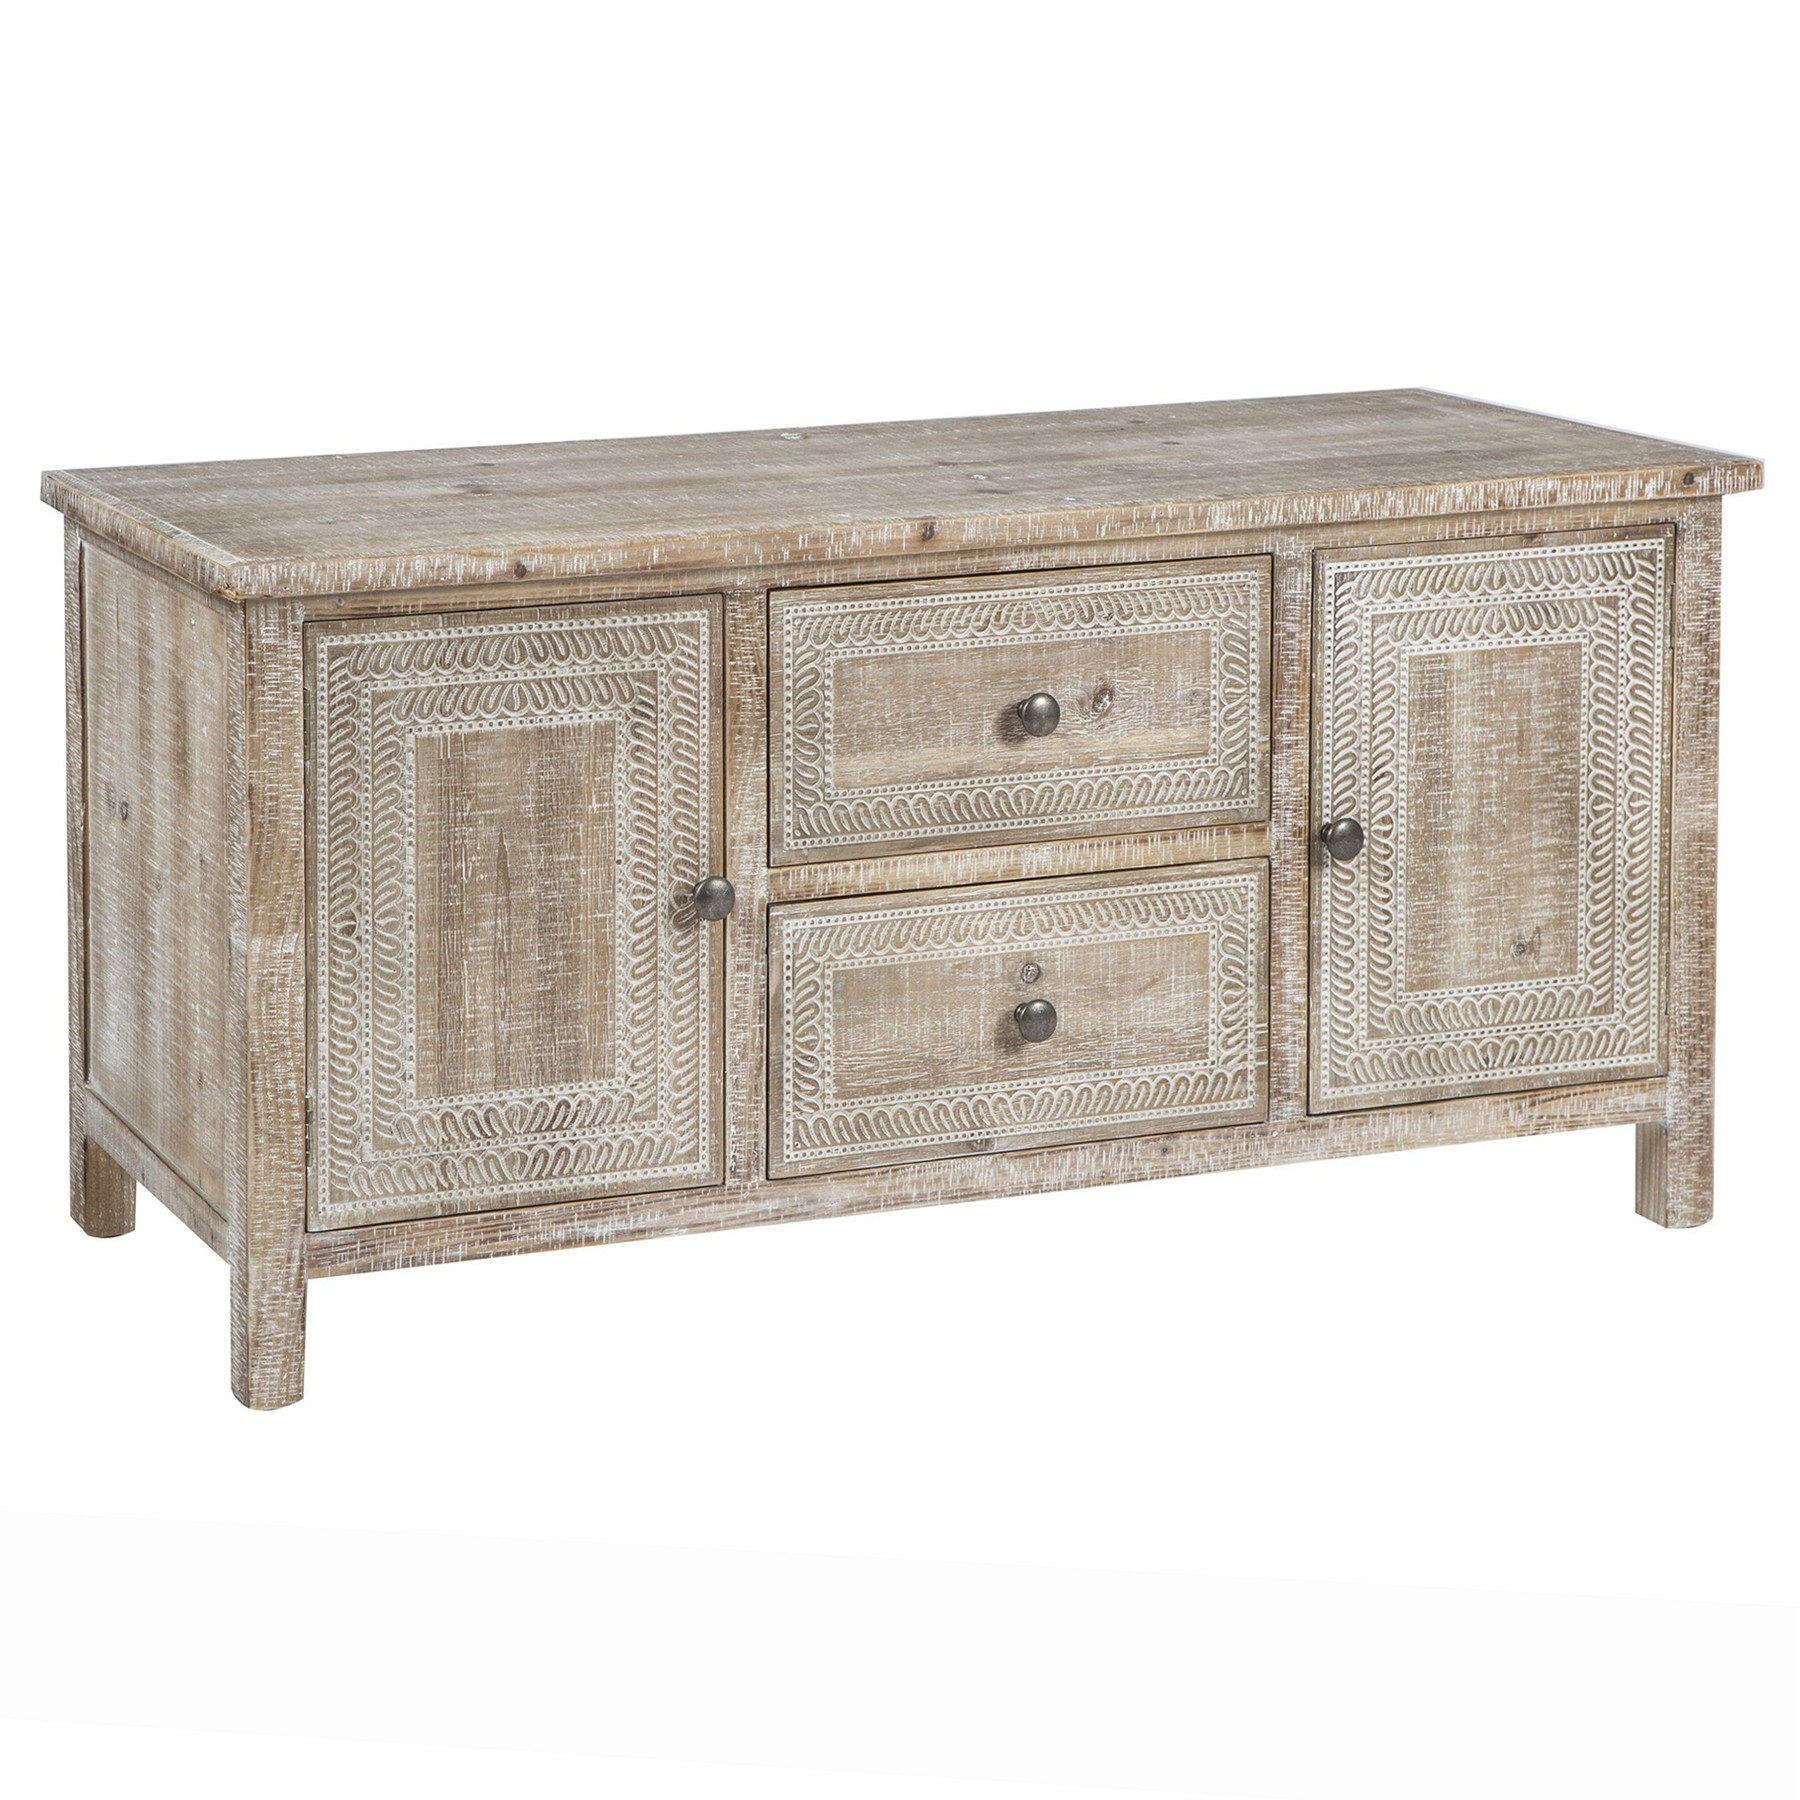 Almada Fir Timber 2 Door 2 Drawer Sideboard, 115cm